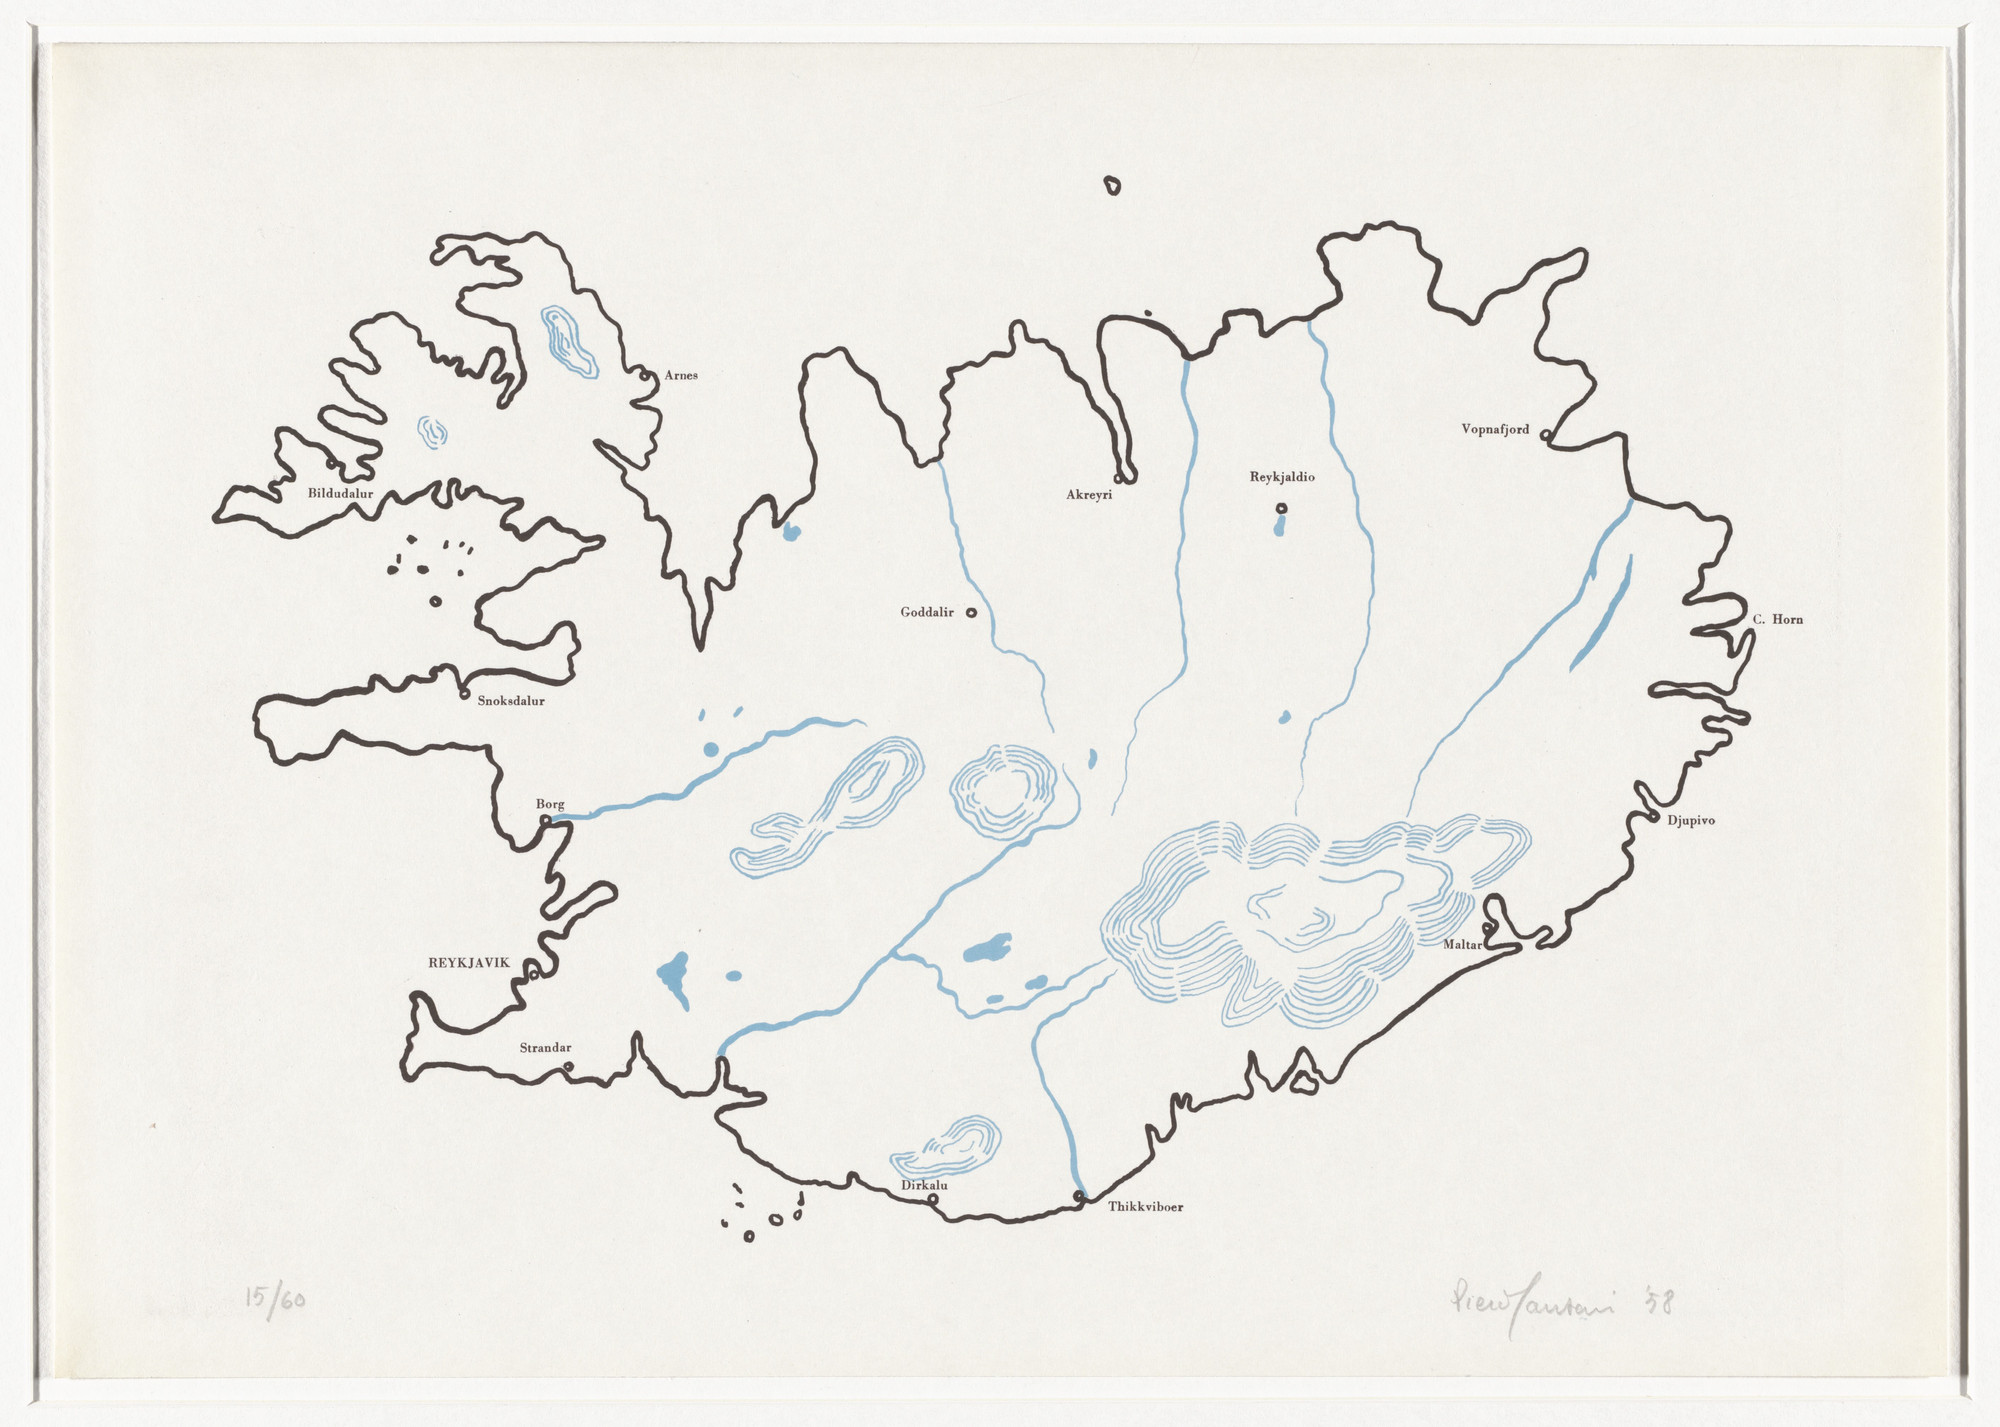 Piero Manzoni. Iceland (Islanda) from 8 Works of Verification (8 Tavole di accertamento). 1958, published 1962